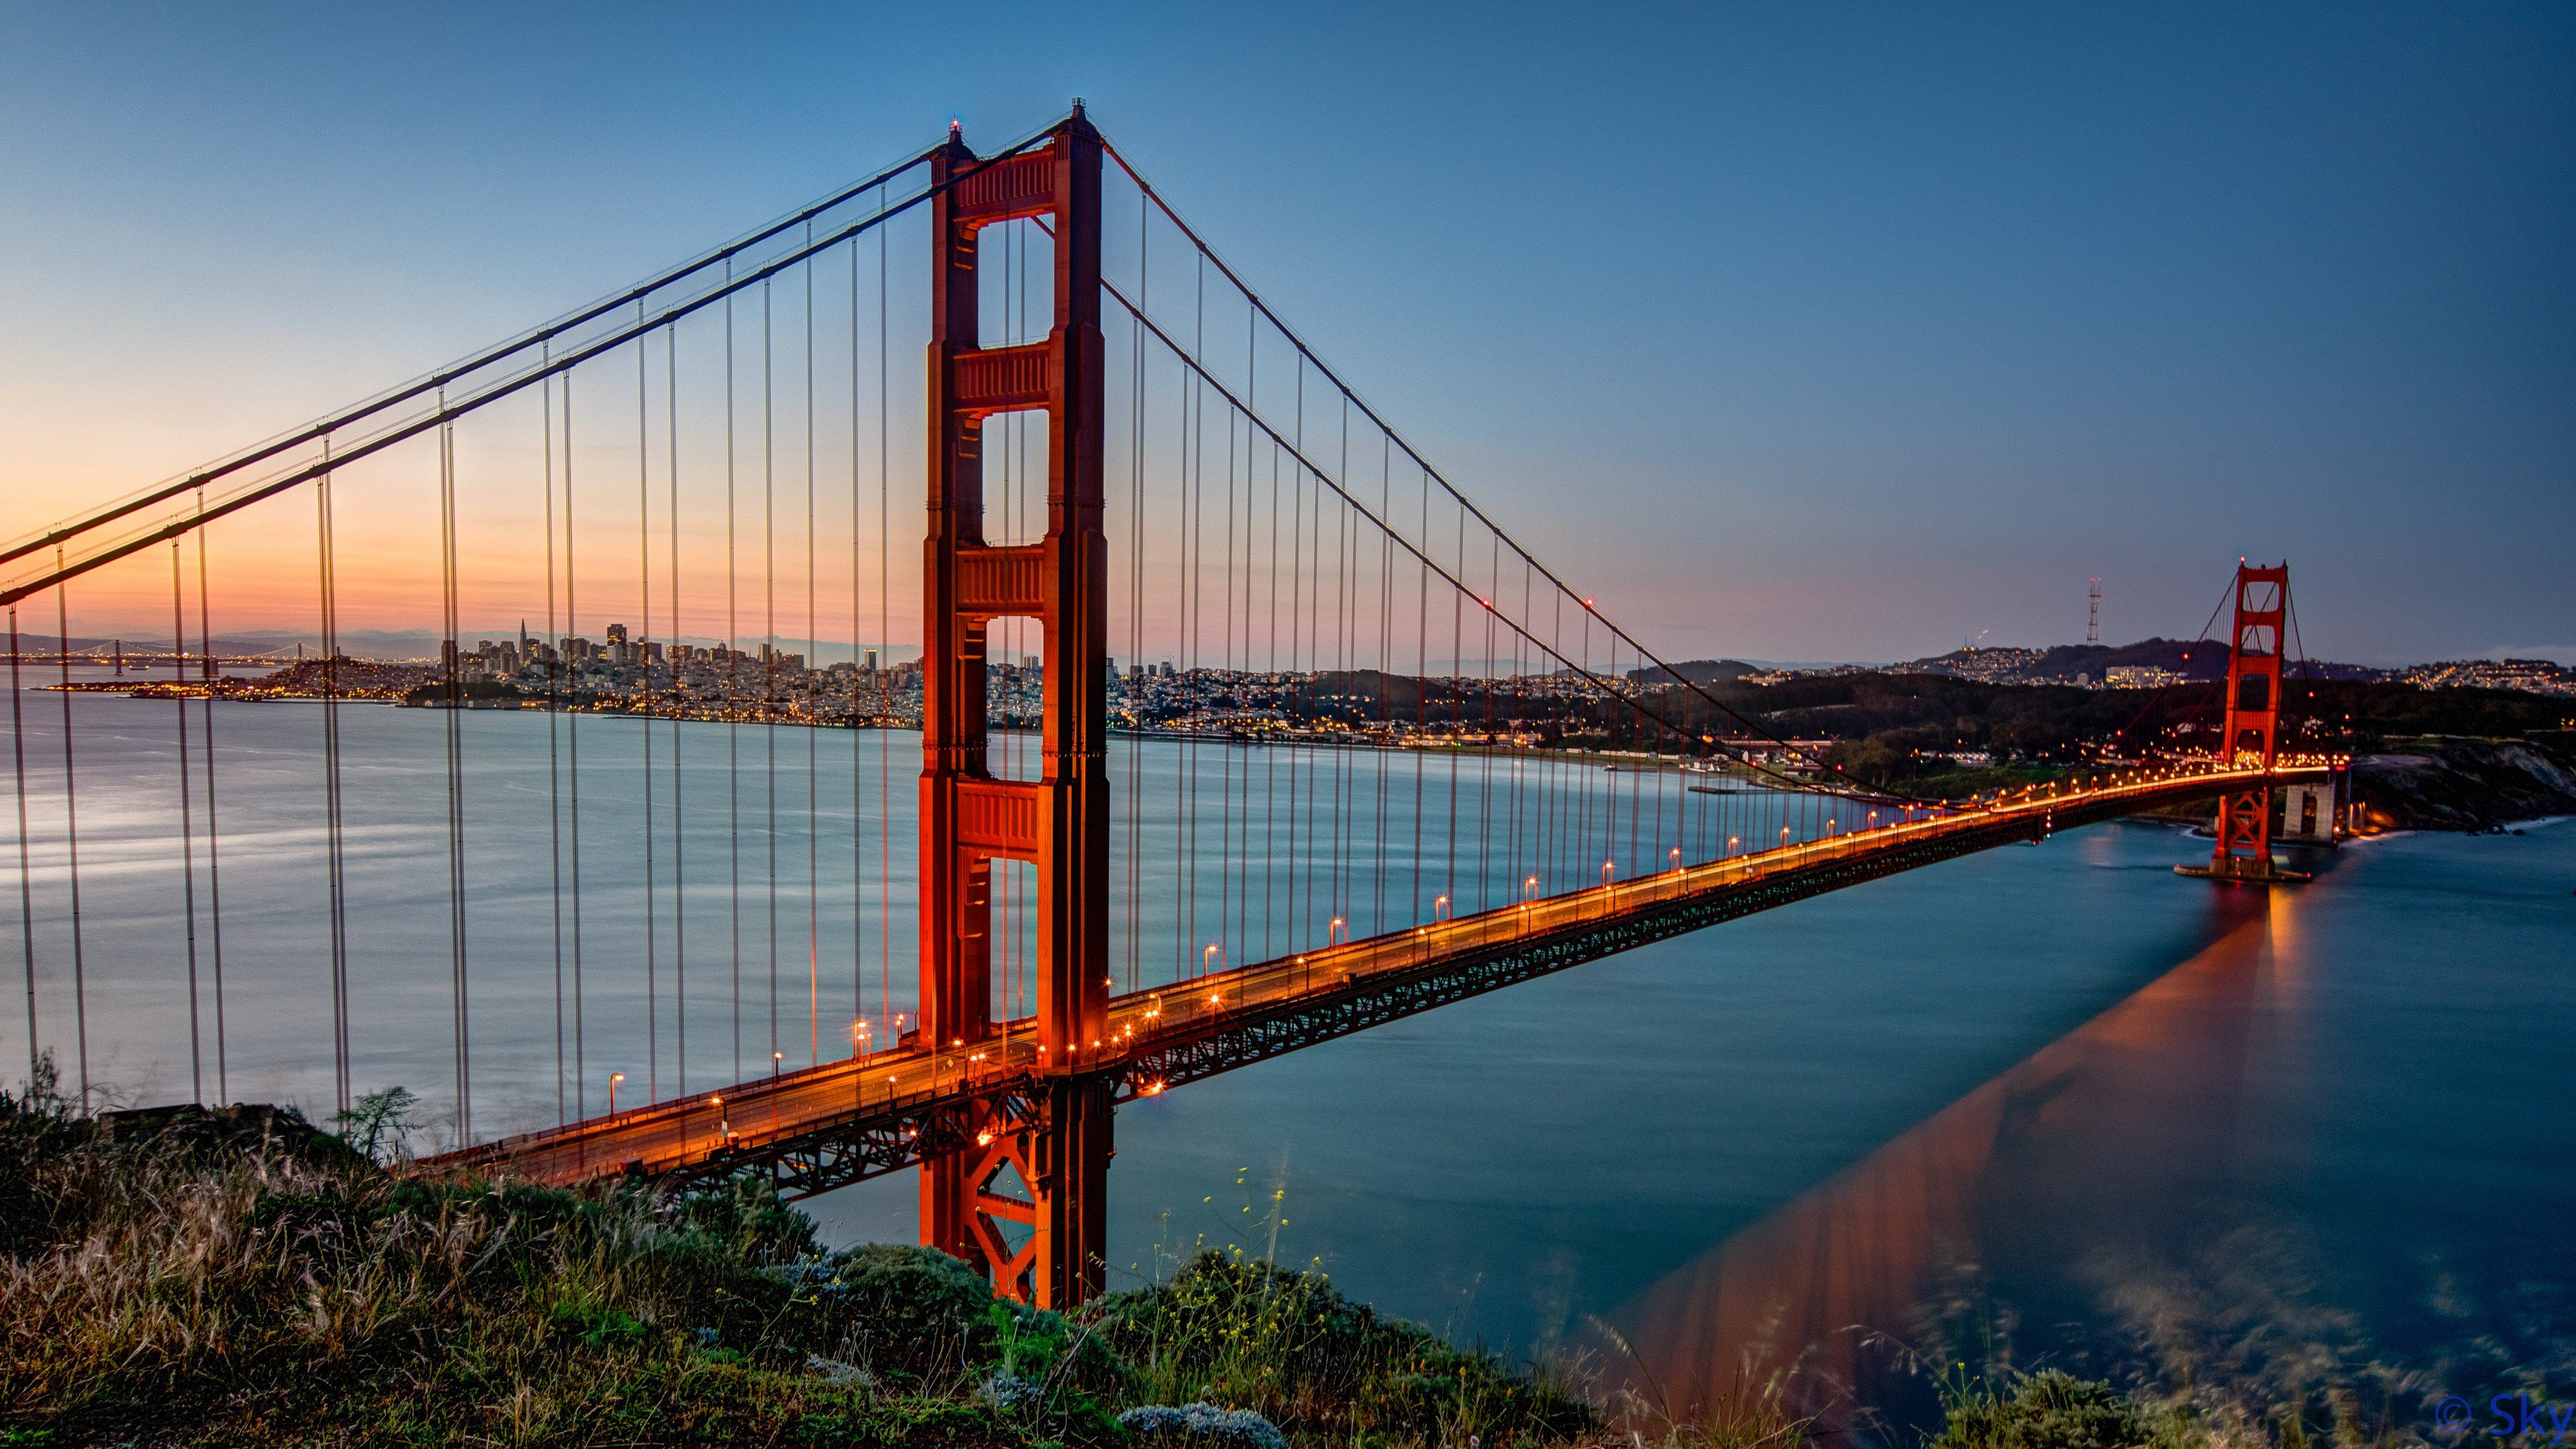 Free Download Browse Top 20 Golden Gate Bridge Hd Wallpapers